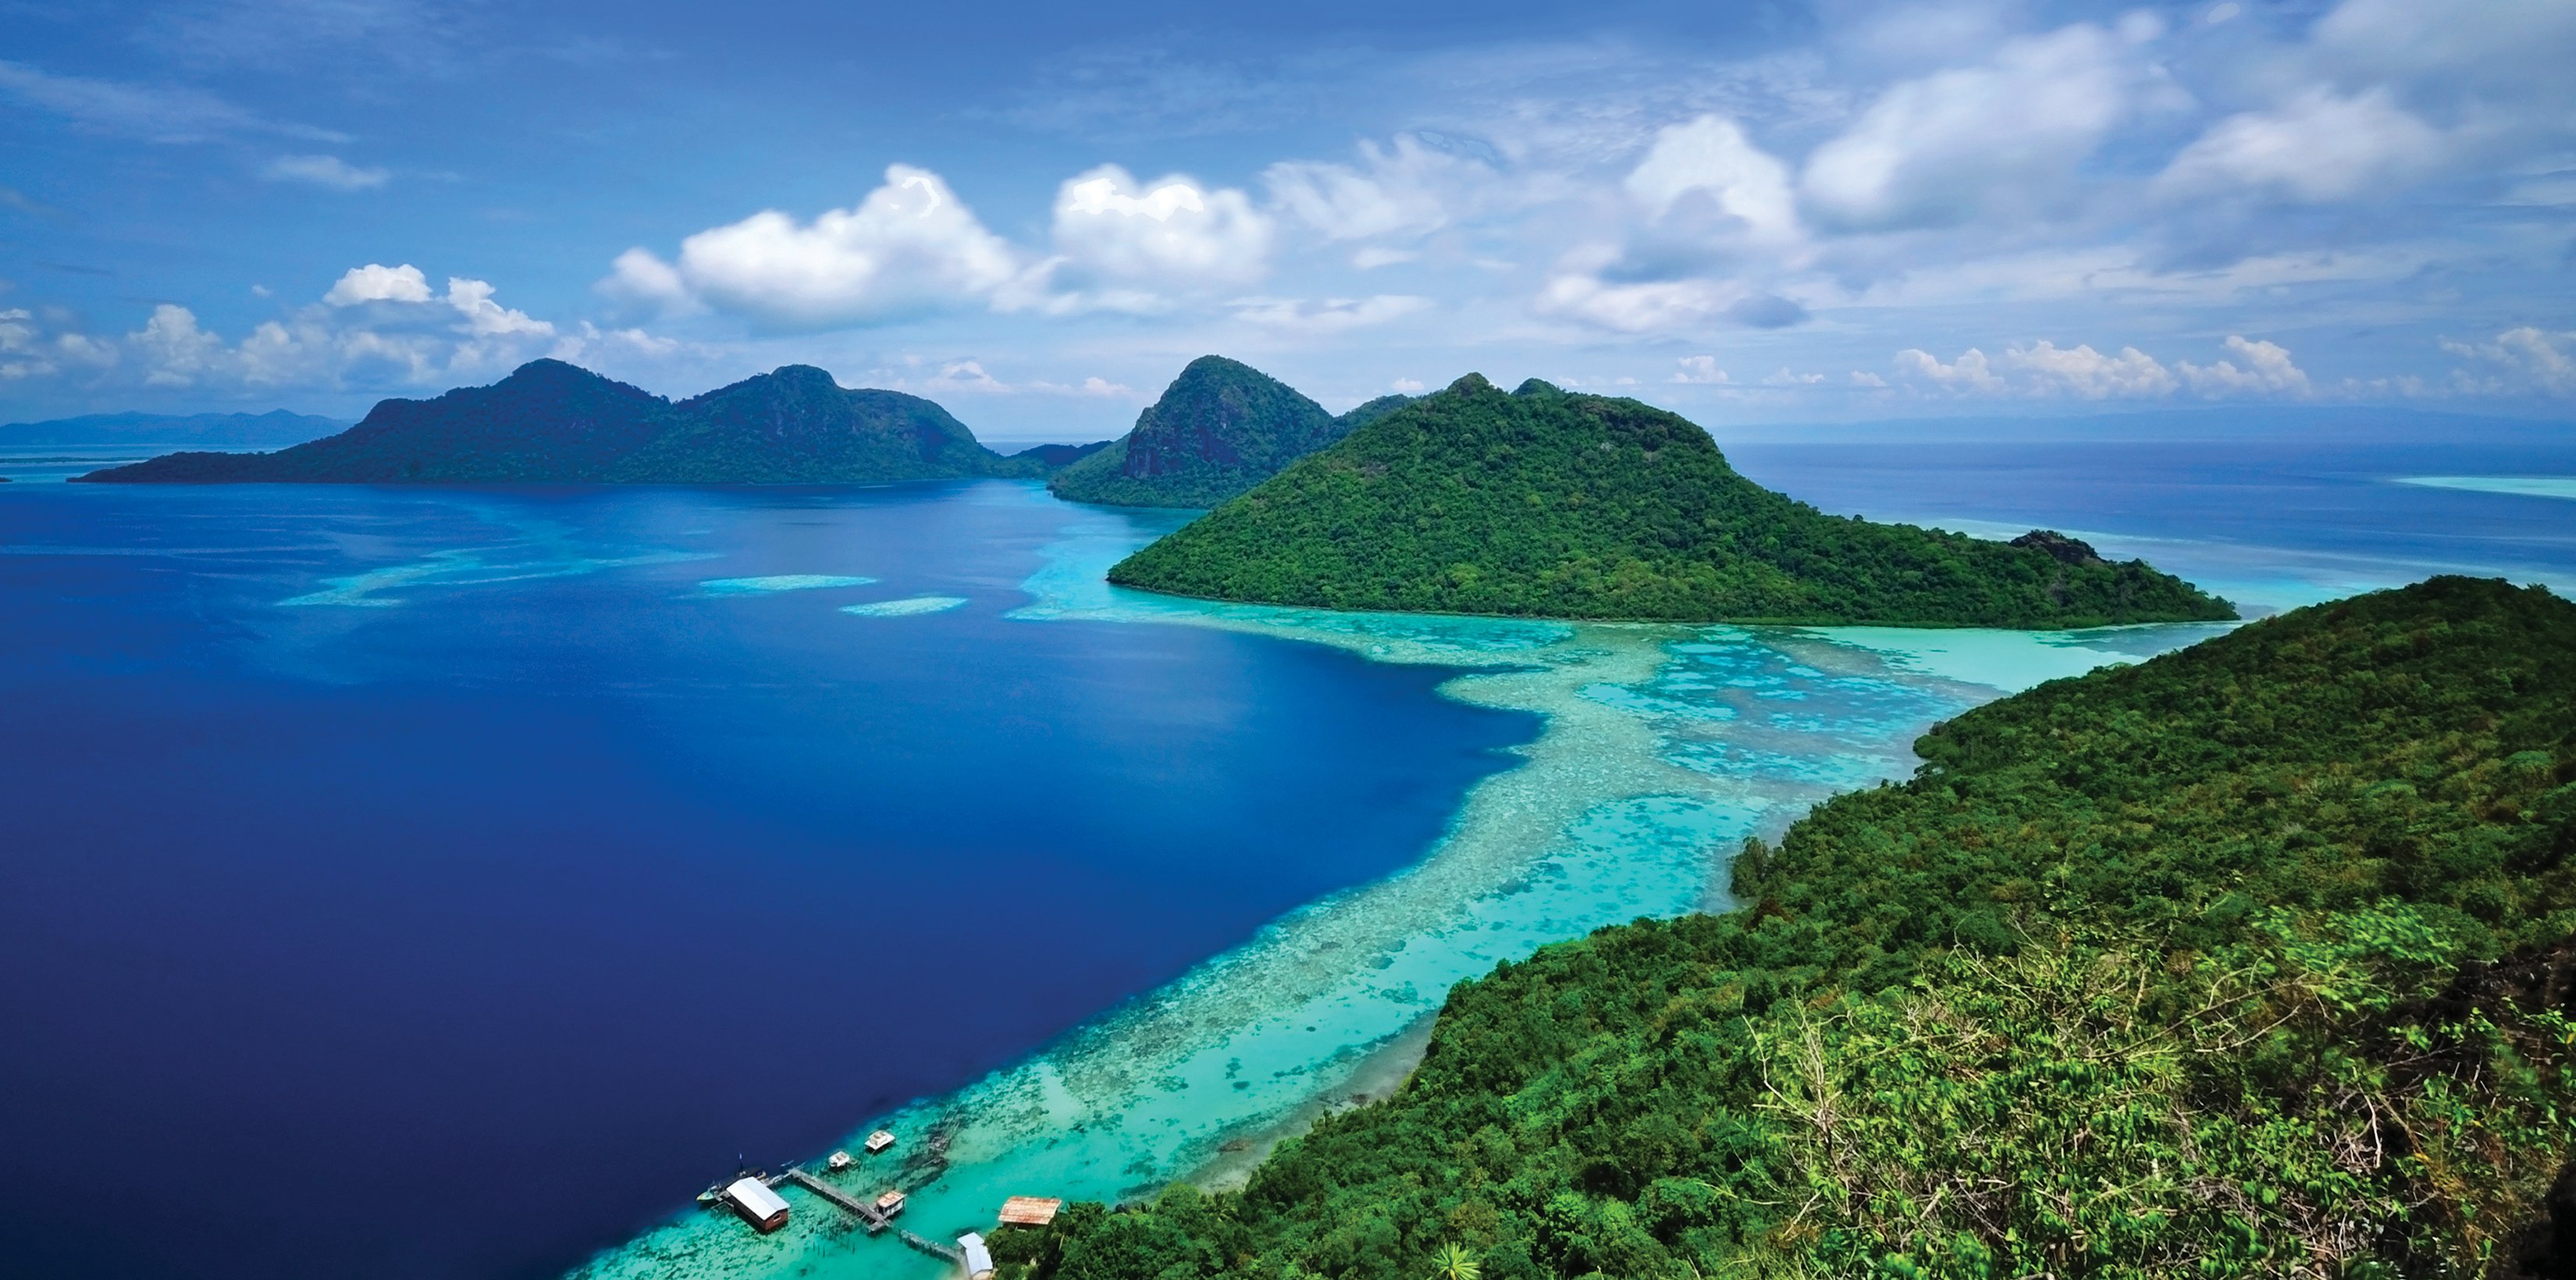 20-Day Borneo Adventure Asia holiday experience